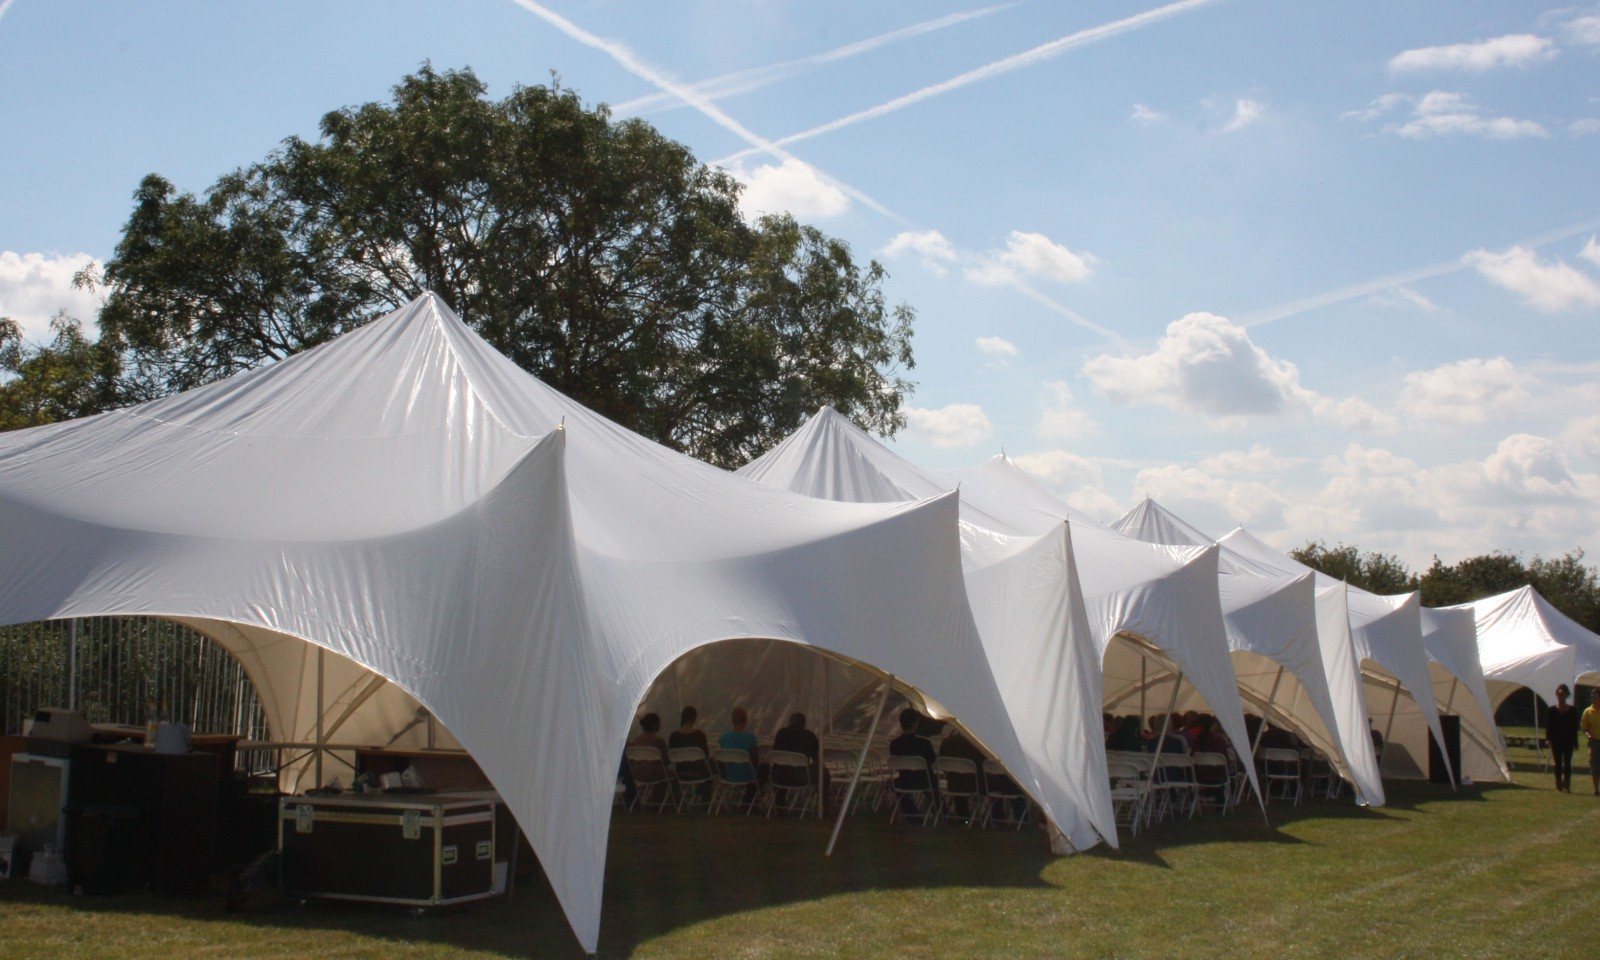 Marquee Tent Hire Tents Marquees London & Hire A Tent London - Best Tent 2018